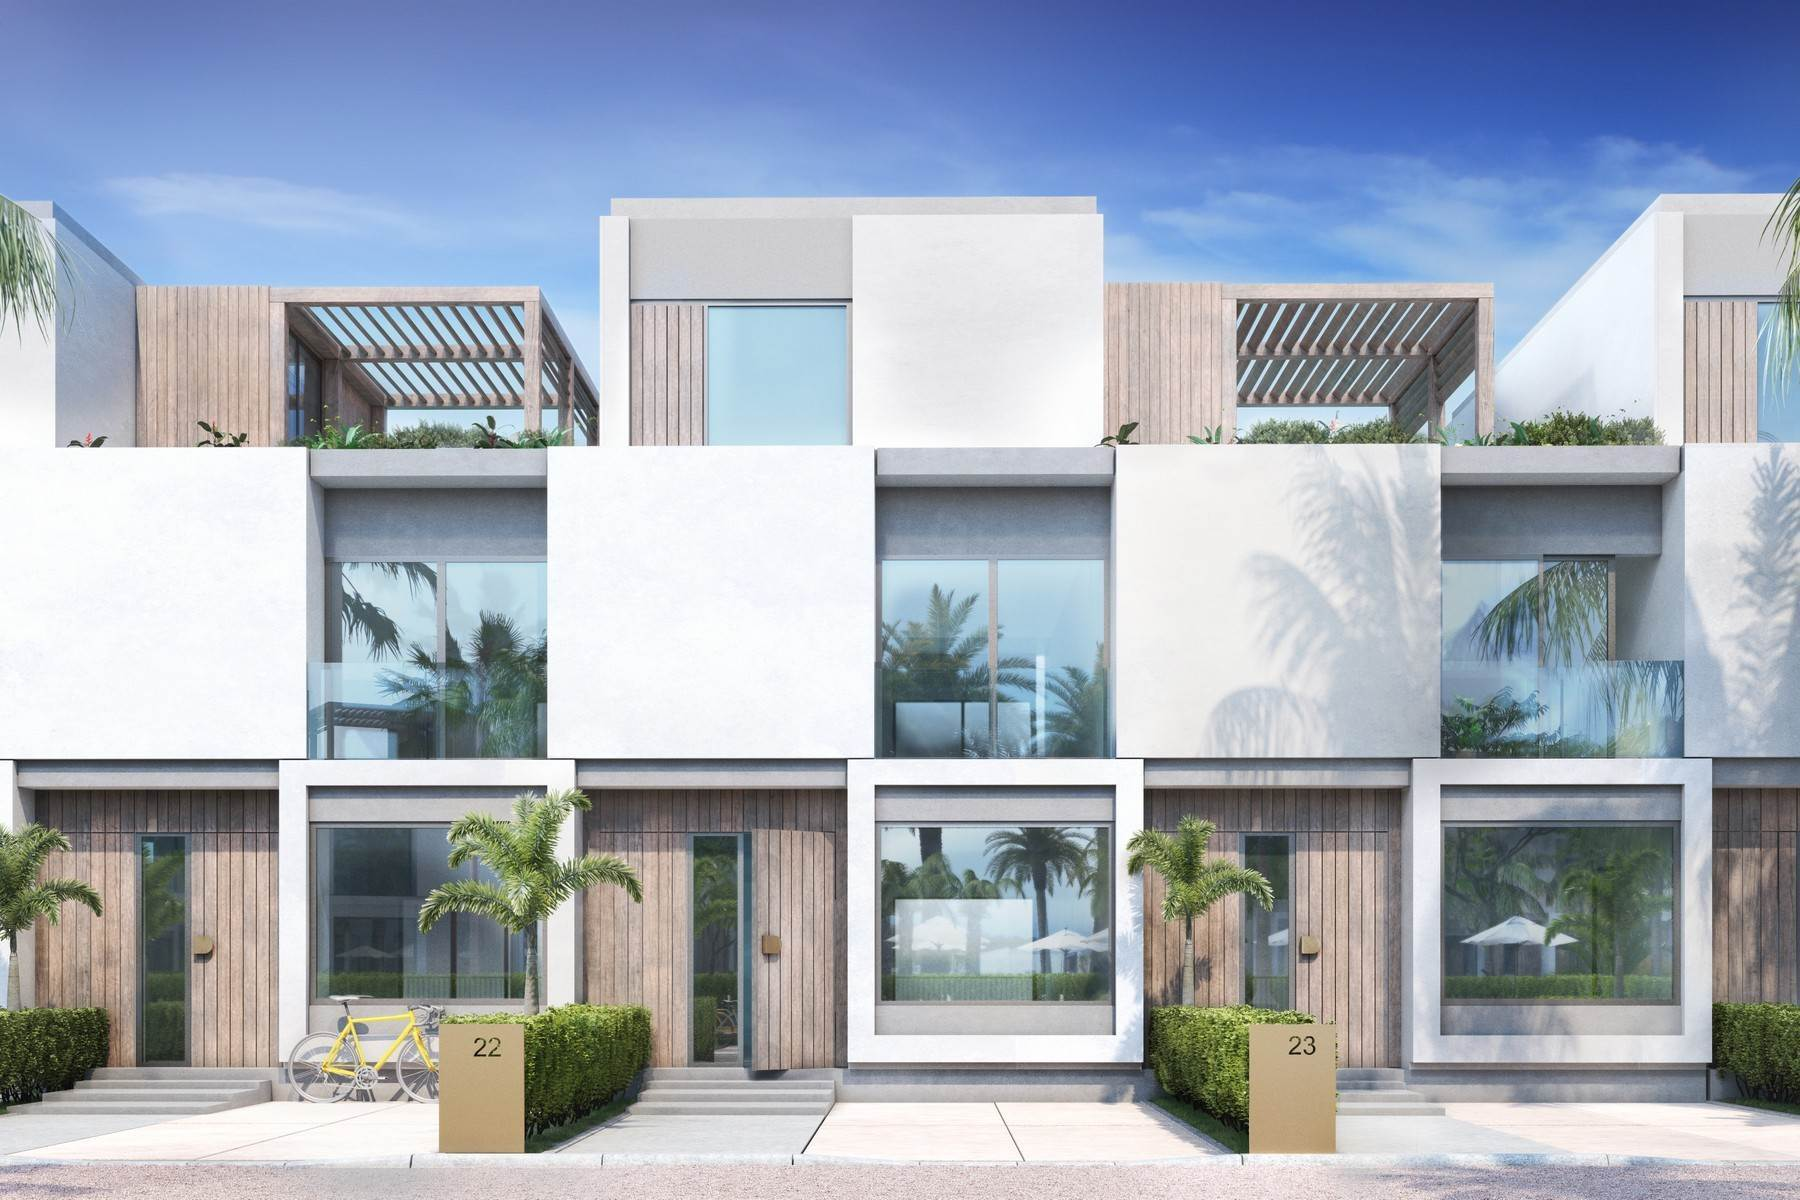 Condominiums for Sale at SOUTH BANK - BOATHOUSES - ONE BEDROOM - E7 South Bank, Long Bay, Providenciales Turks And Caicos Islands